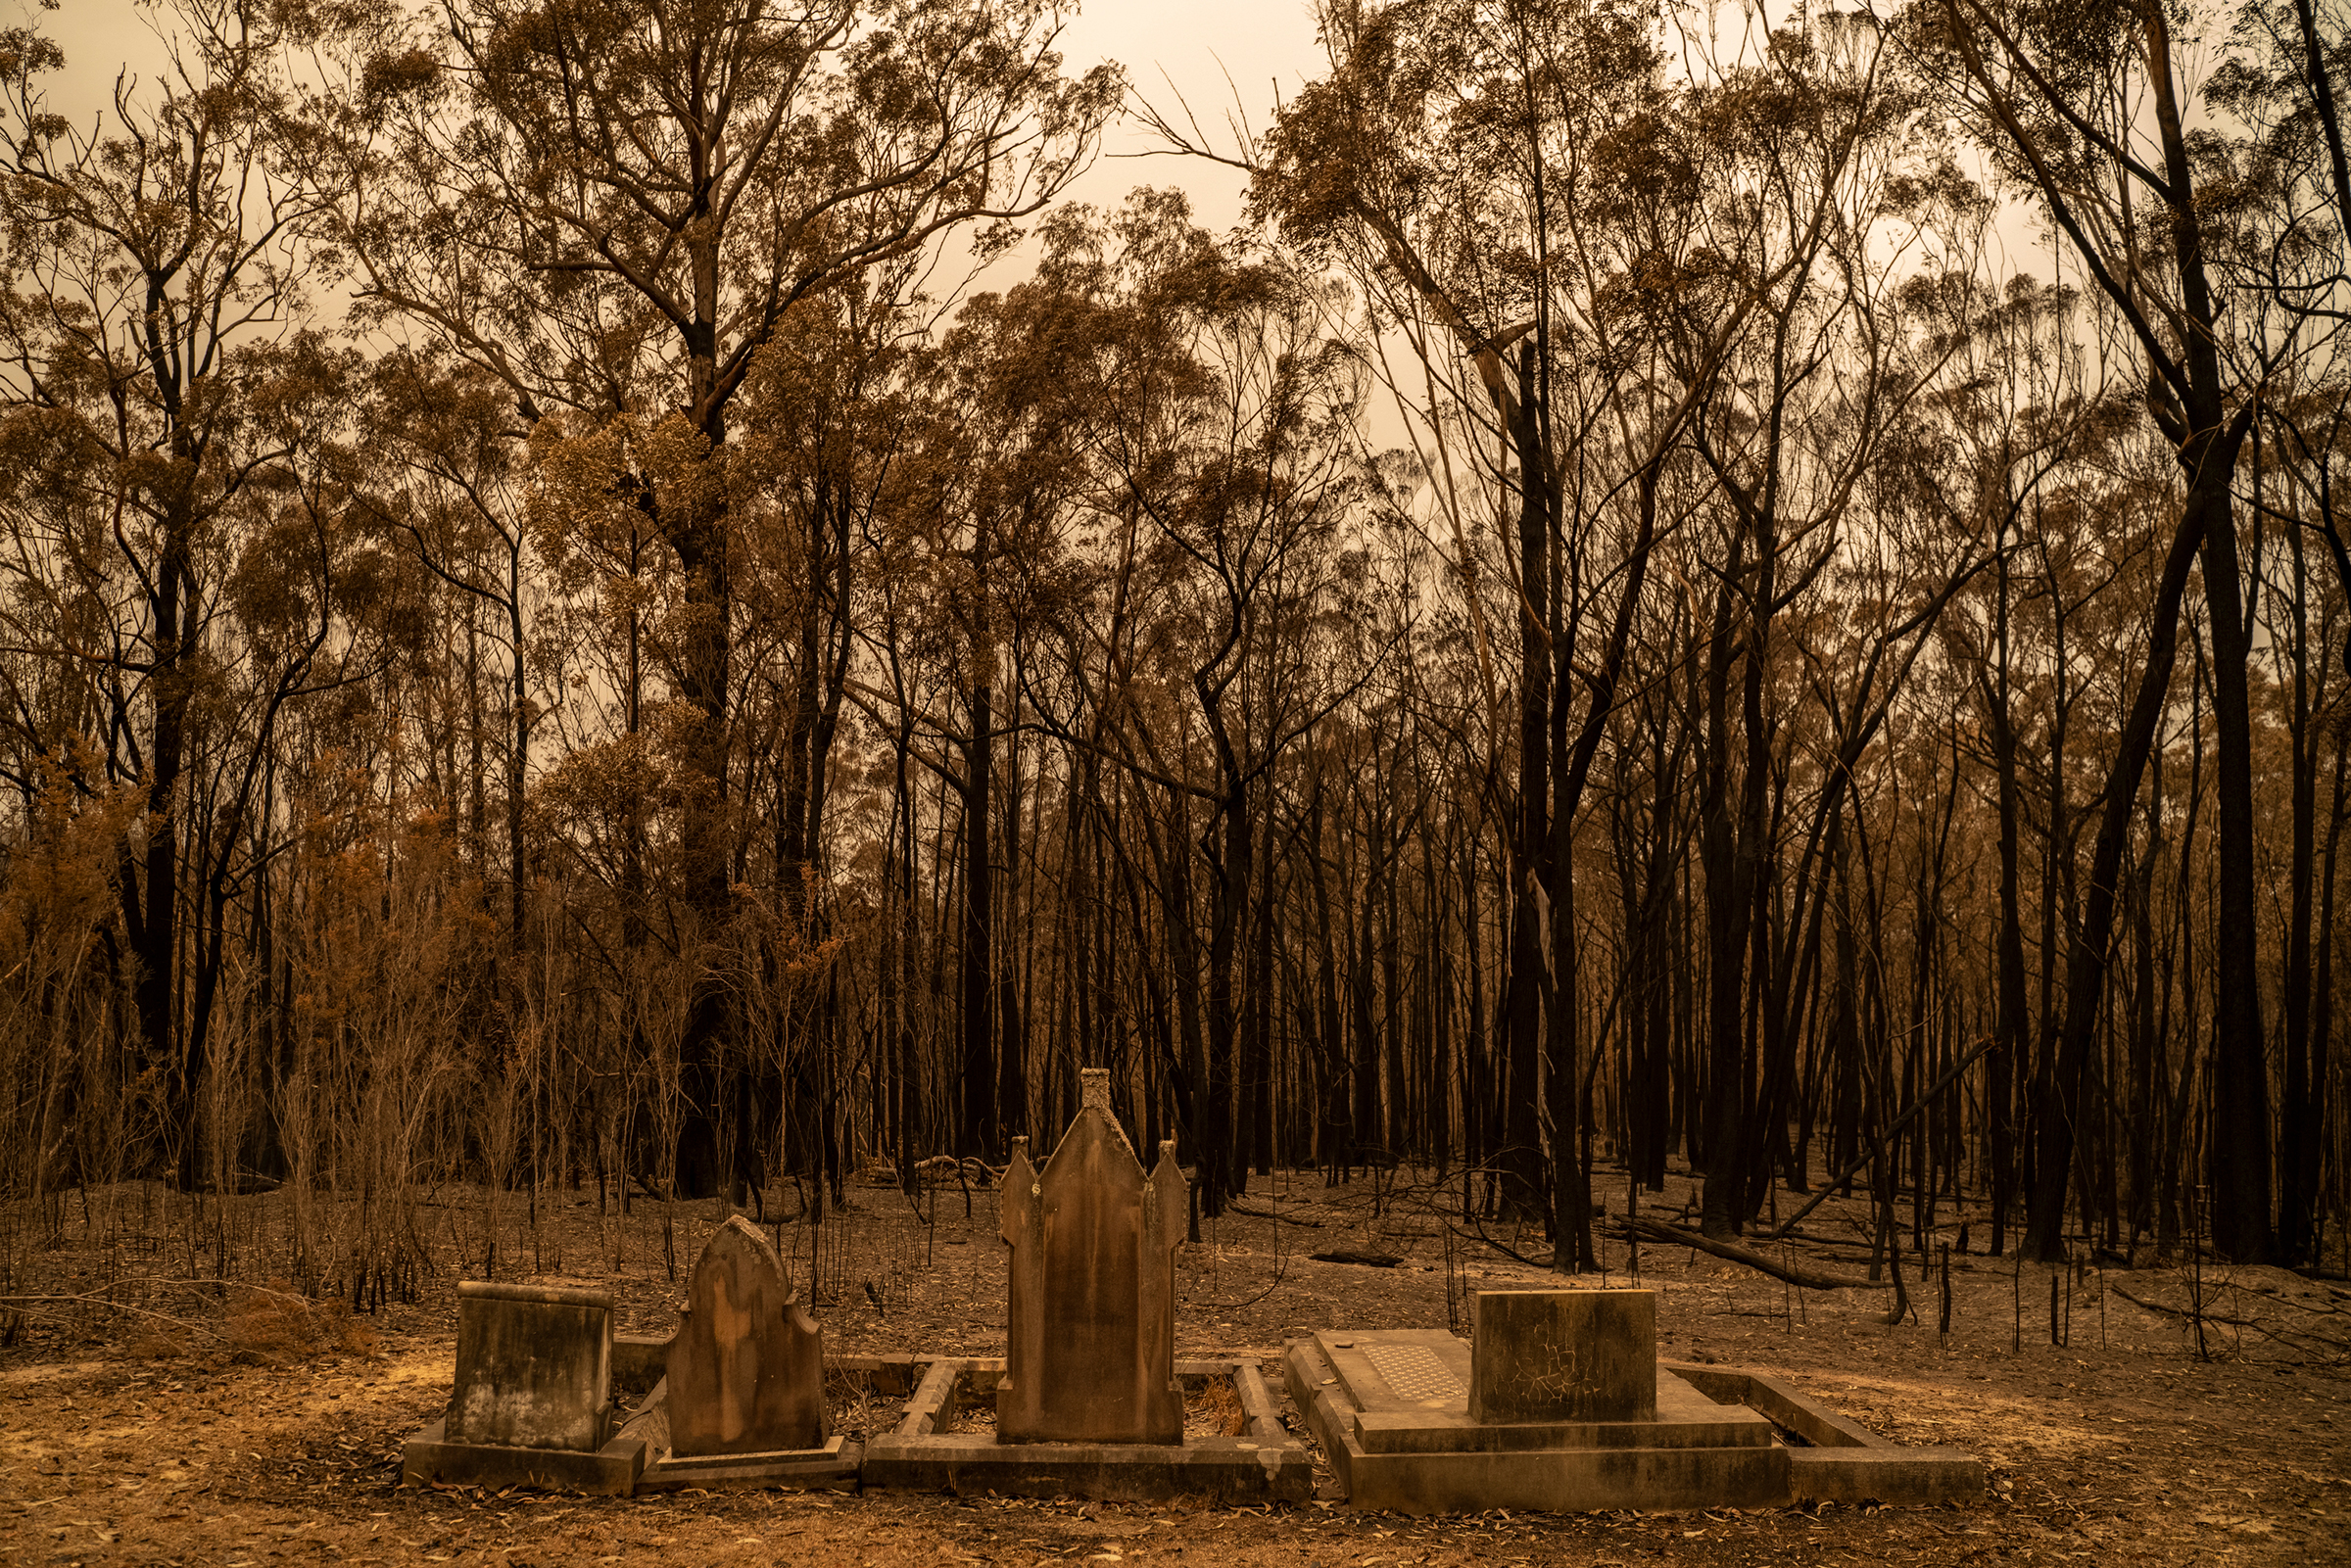 A cemetery recently hit by bushfires near Mogo, New South Wales, on Jan. 5.